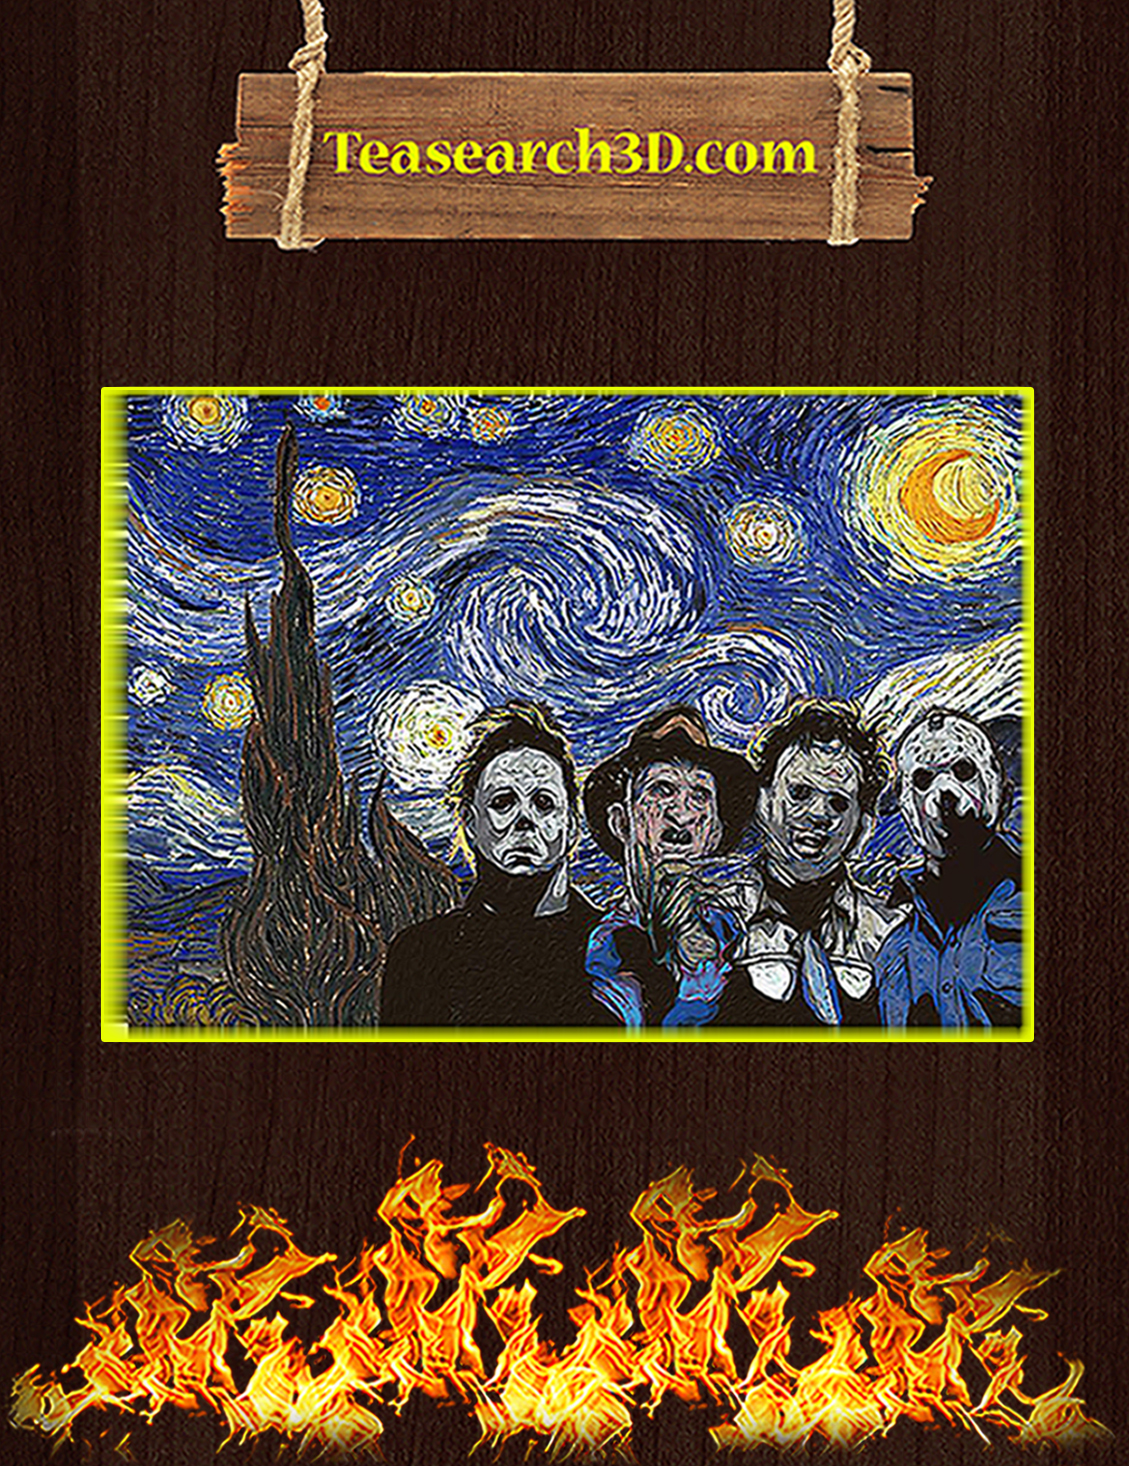 Horror movies killer starry night van gogh poster A3